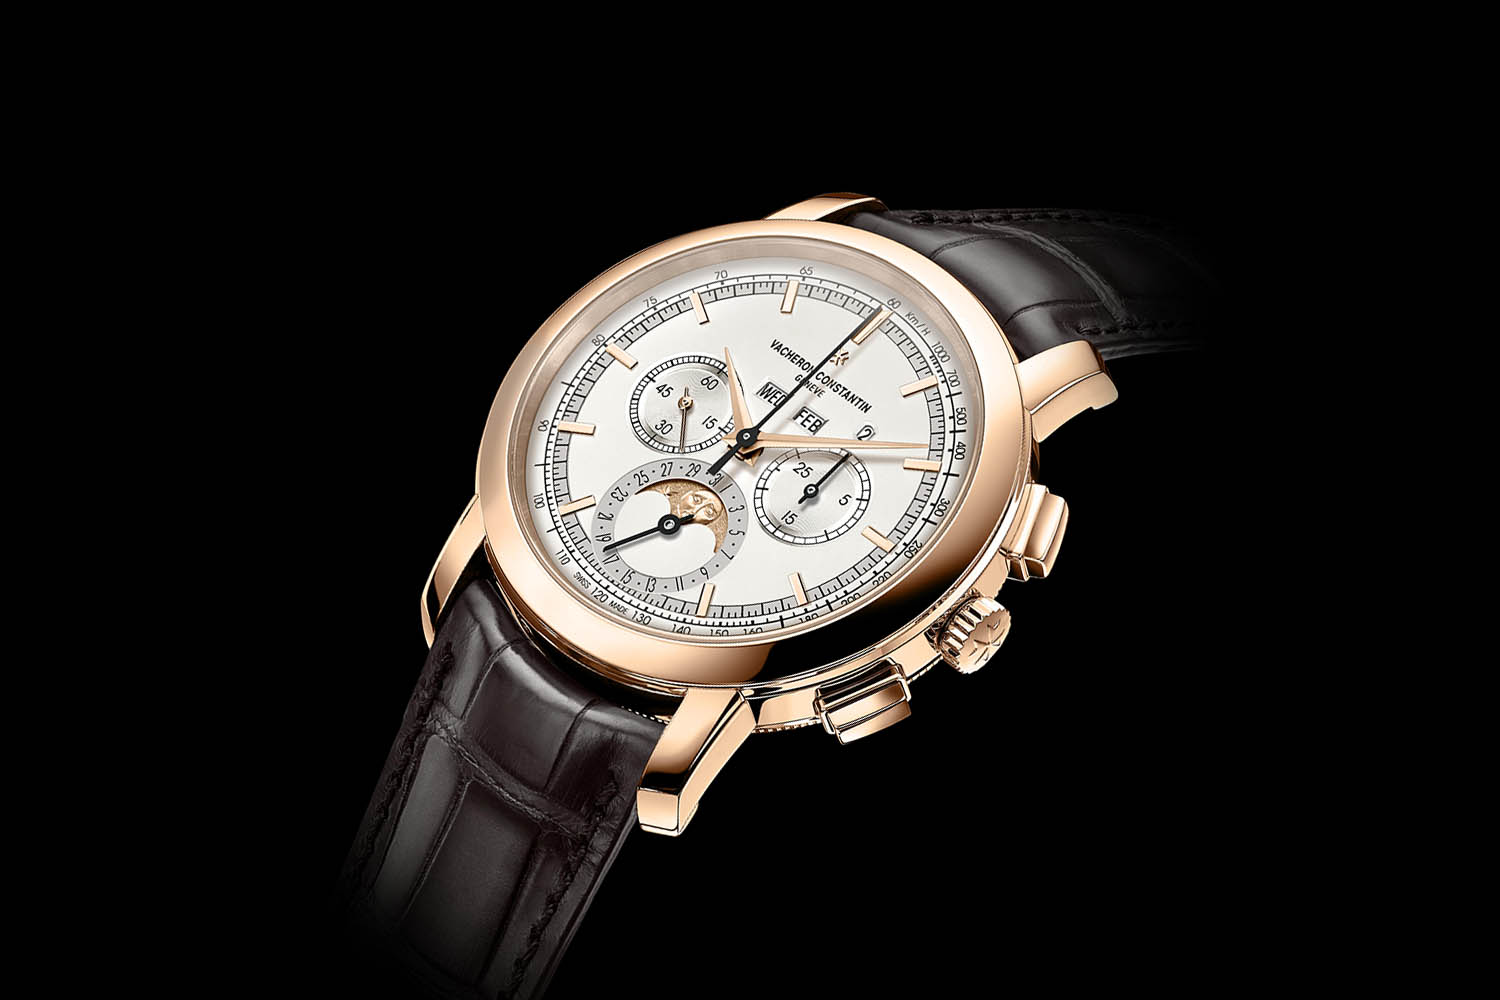 SIHH 2017 – Vacheron Constantin Traditionnelle Chronograph Perpetual Calendar – now available in Pink Gold